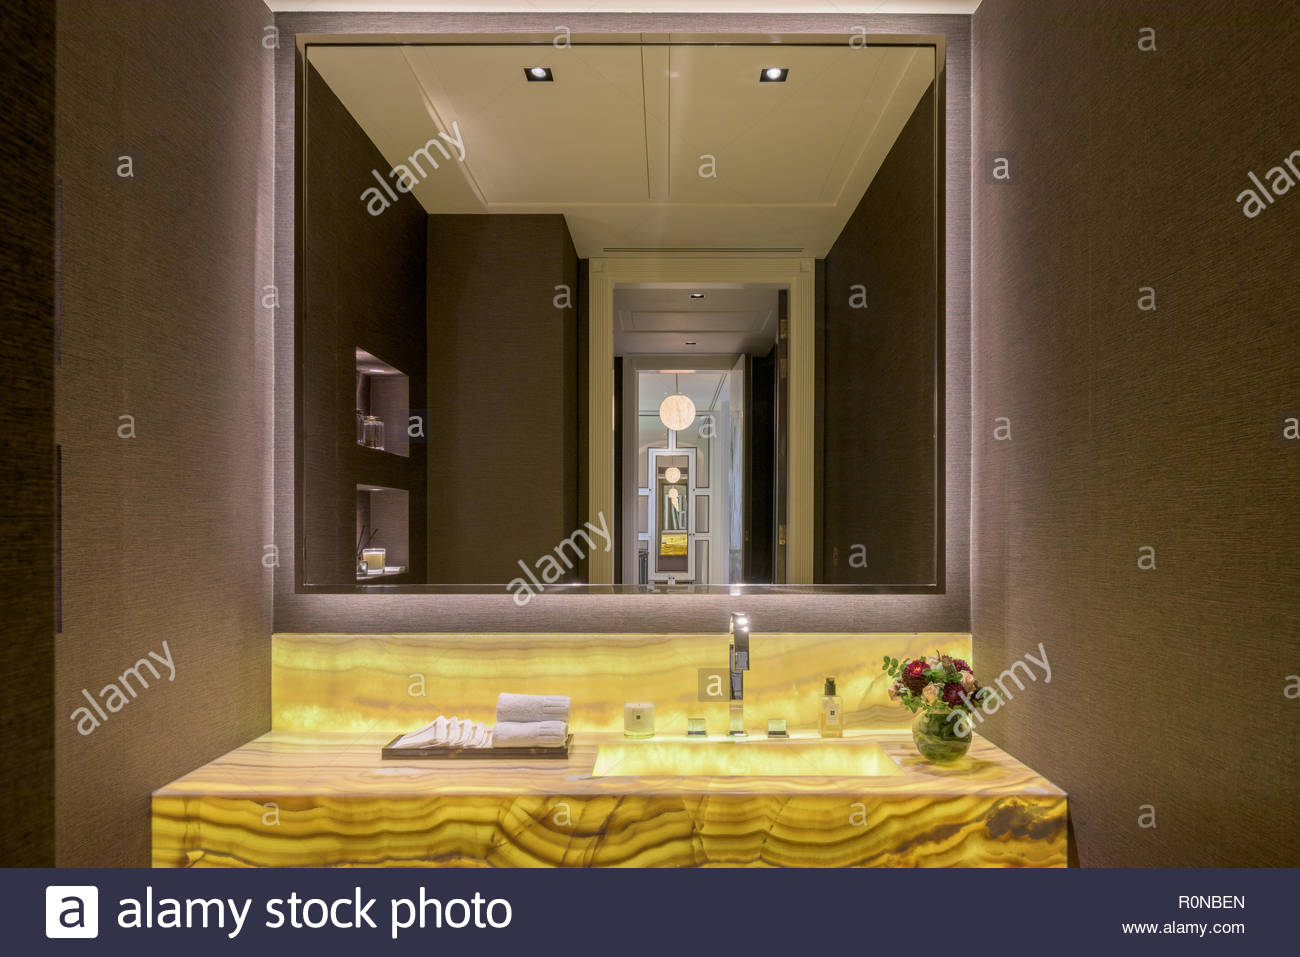 Yellow sink in bathroom - Stock Image